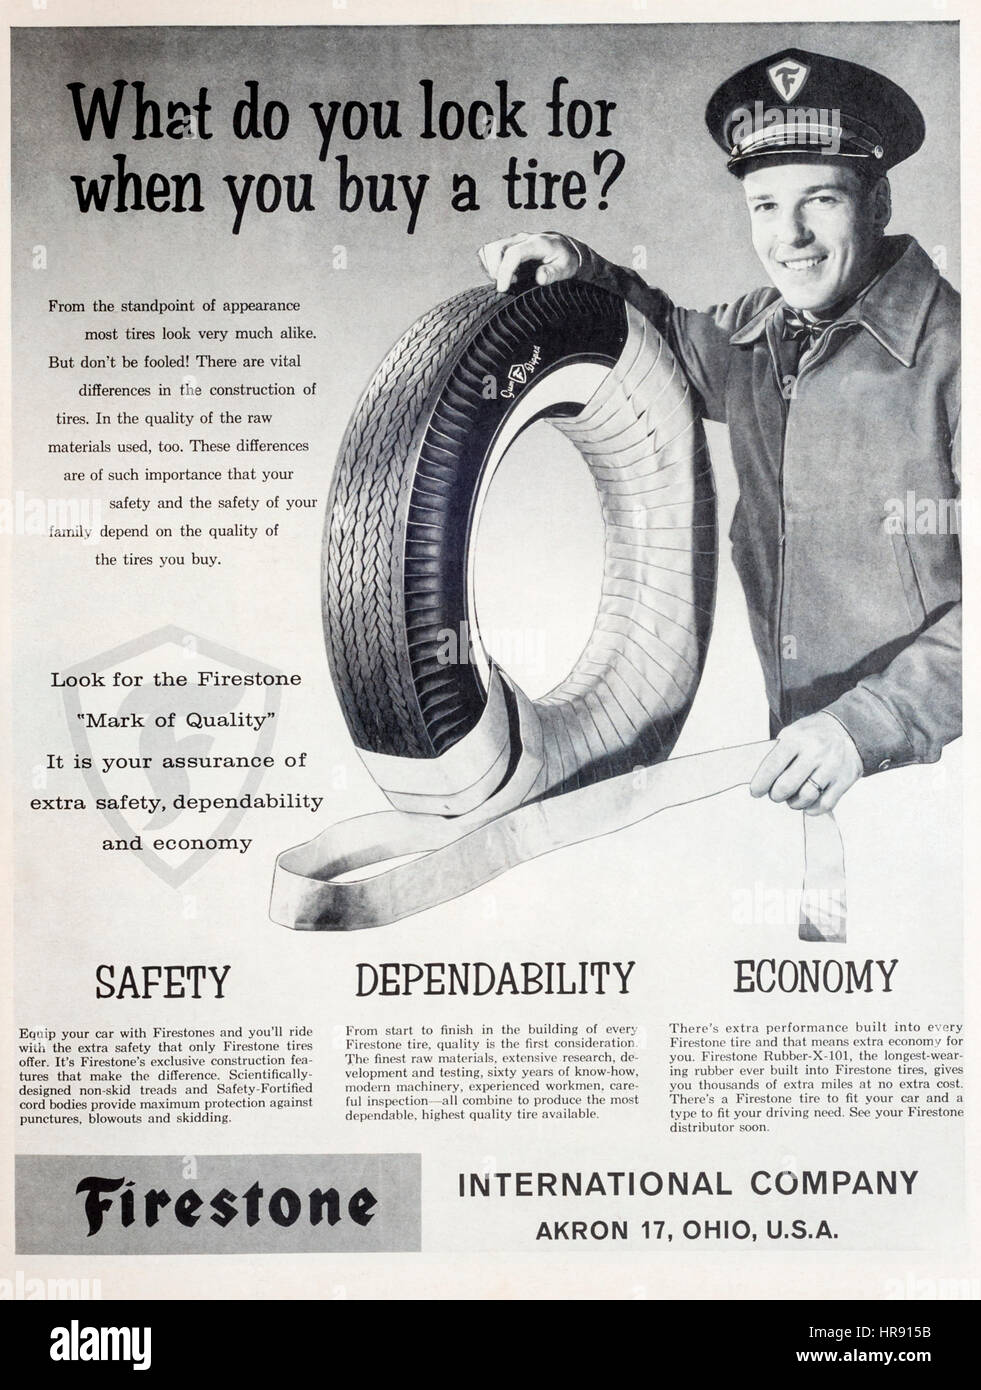 1960s magazine advertisement for Firestone tires or tyres. - Stock Image